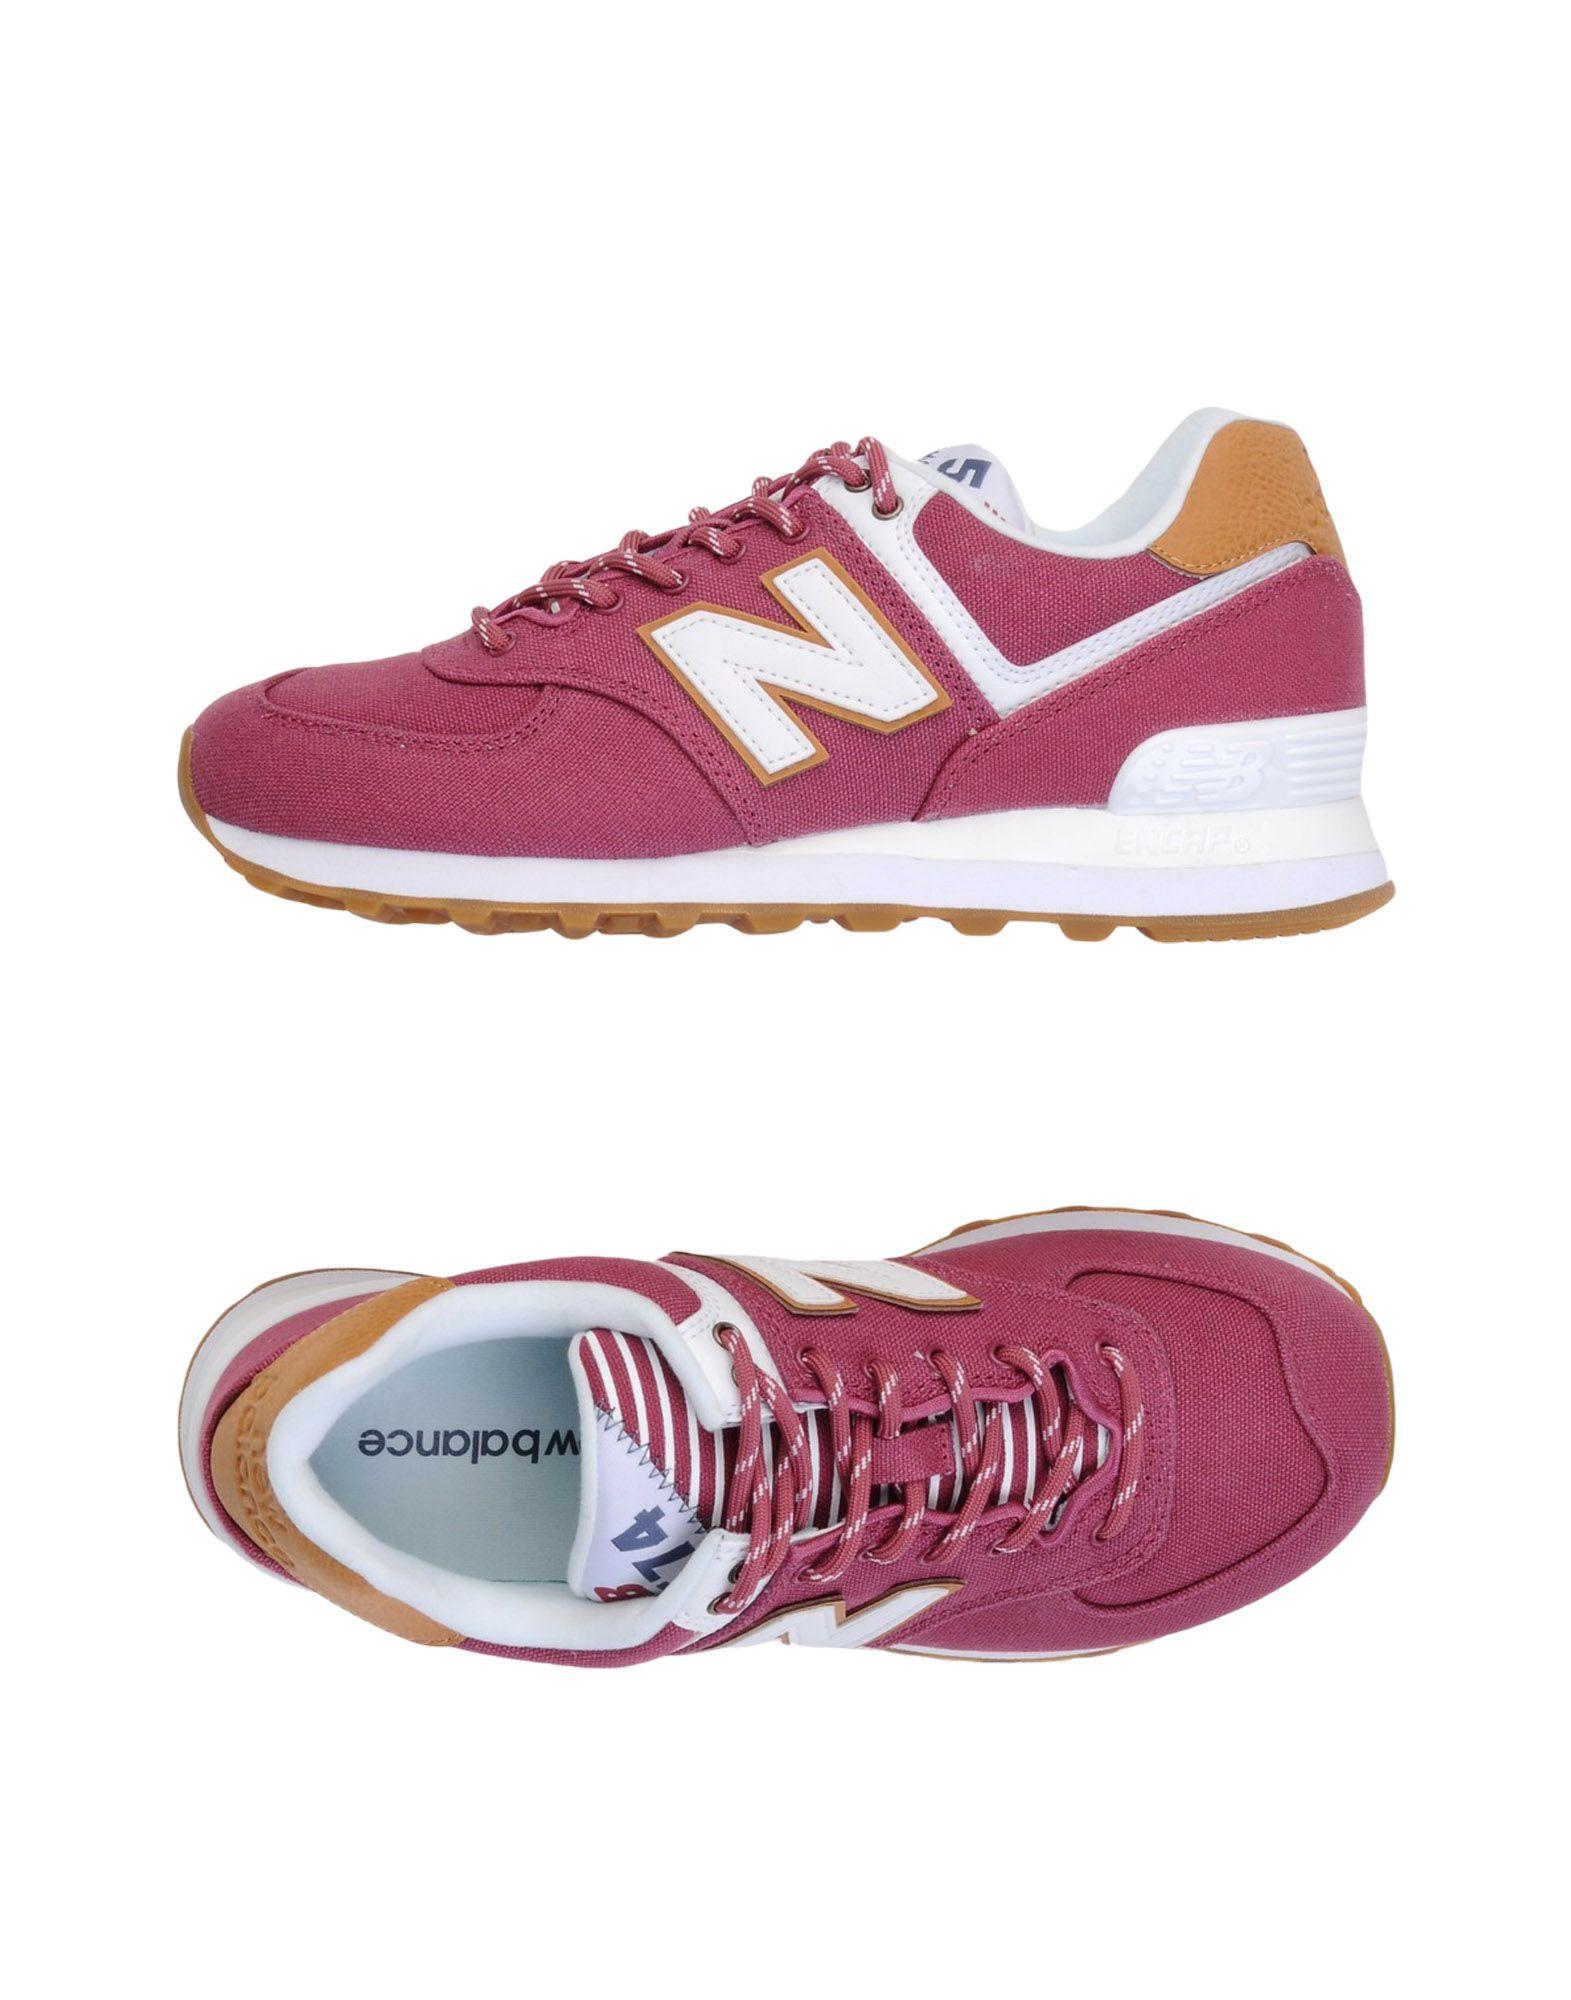 Turnschuhe New Balance 574 Yacht Club - damen - 11466919IR